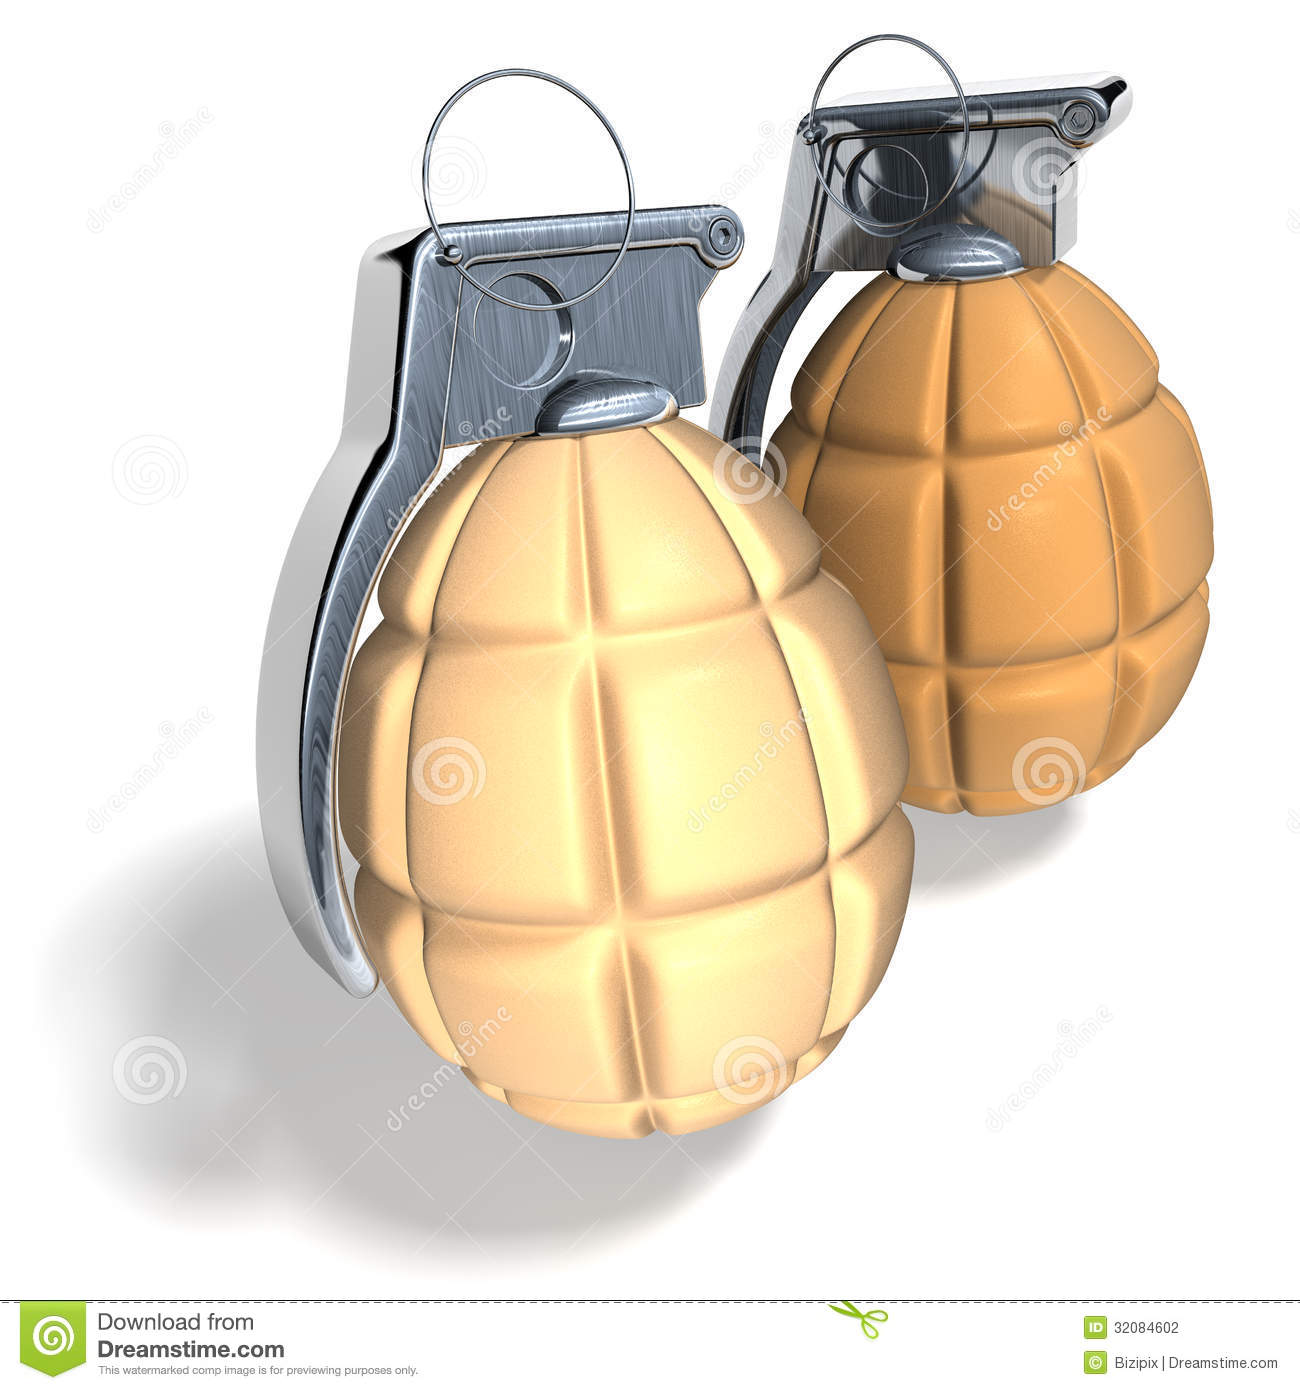 Easter Egg Hand Grenades Stock Photography - Image: 32084602 picture black and white stock